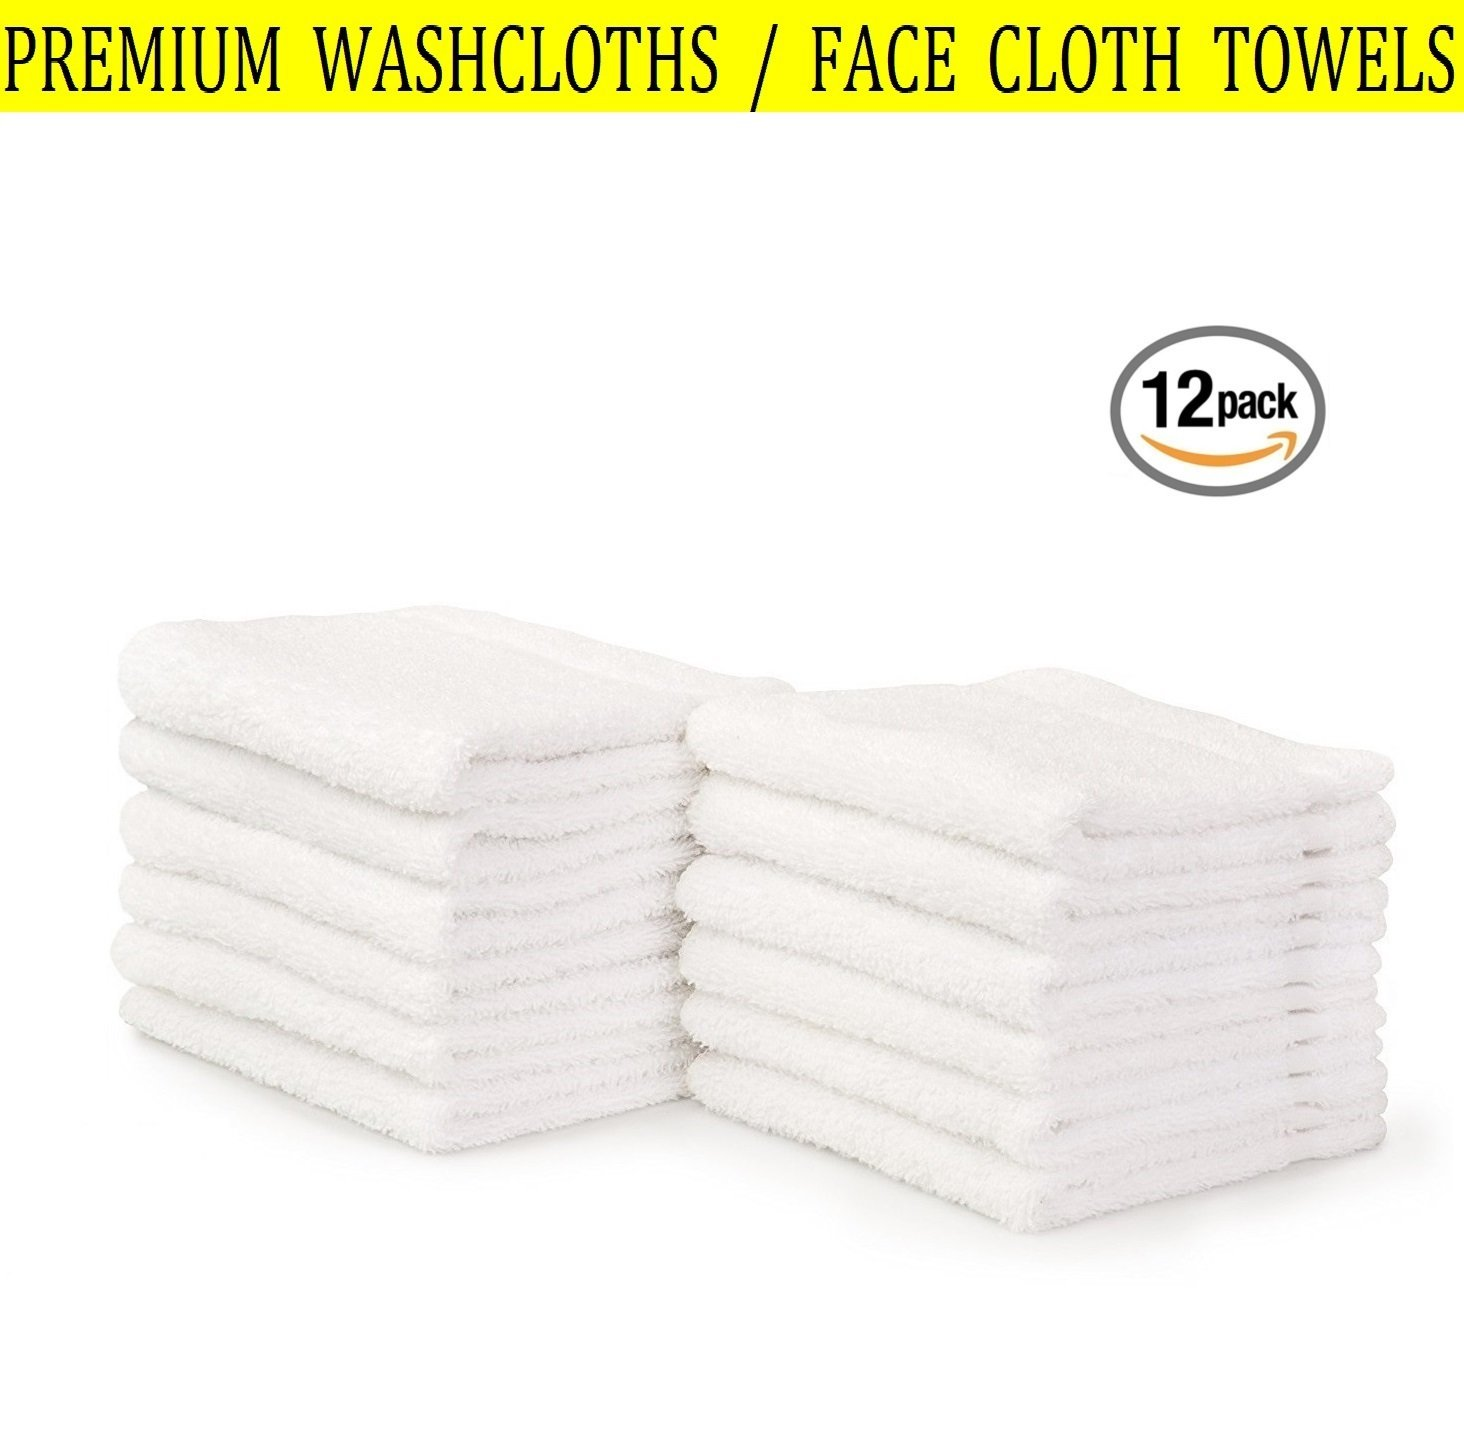 Premium Washcloth Towel Set | Pack of 12 White 13 x 13 Inch Wash Cloth | 100% Super Soft Cotton, Highly Absorbent, Machine Washable, Multi-purpose | Ideal for Face Cleansing, Gym, Spa, Bathroom ... ✔️